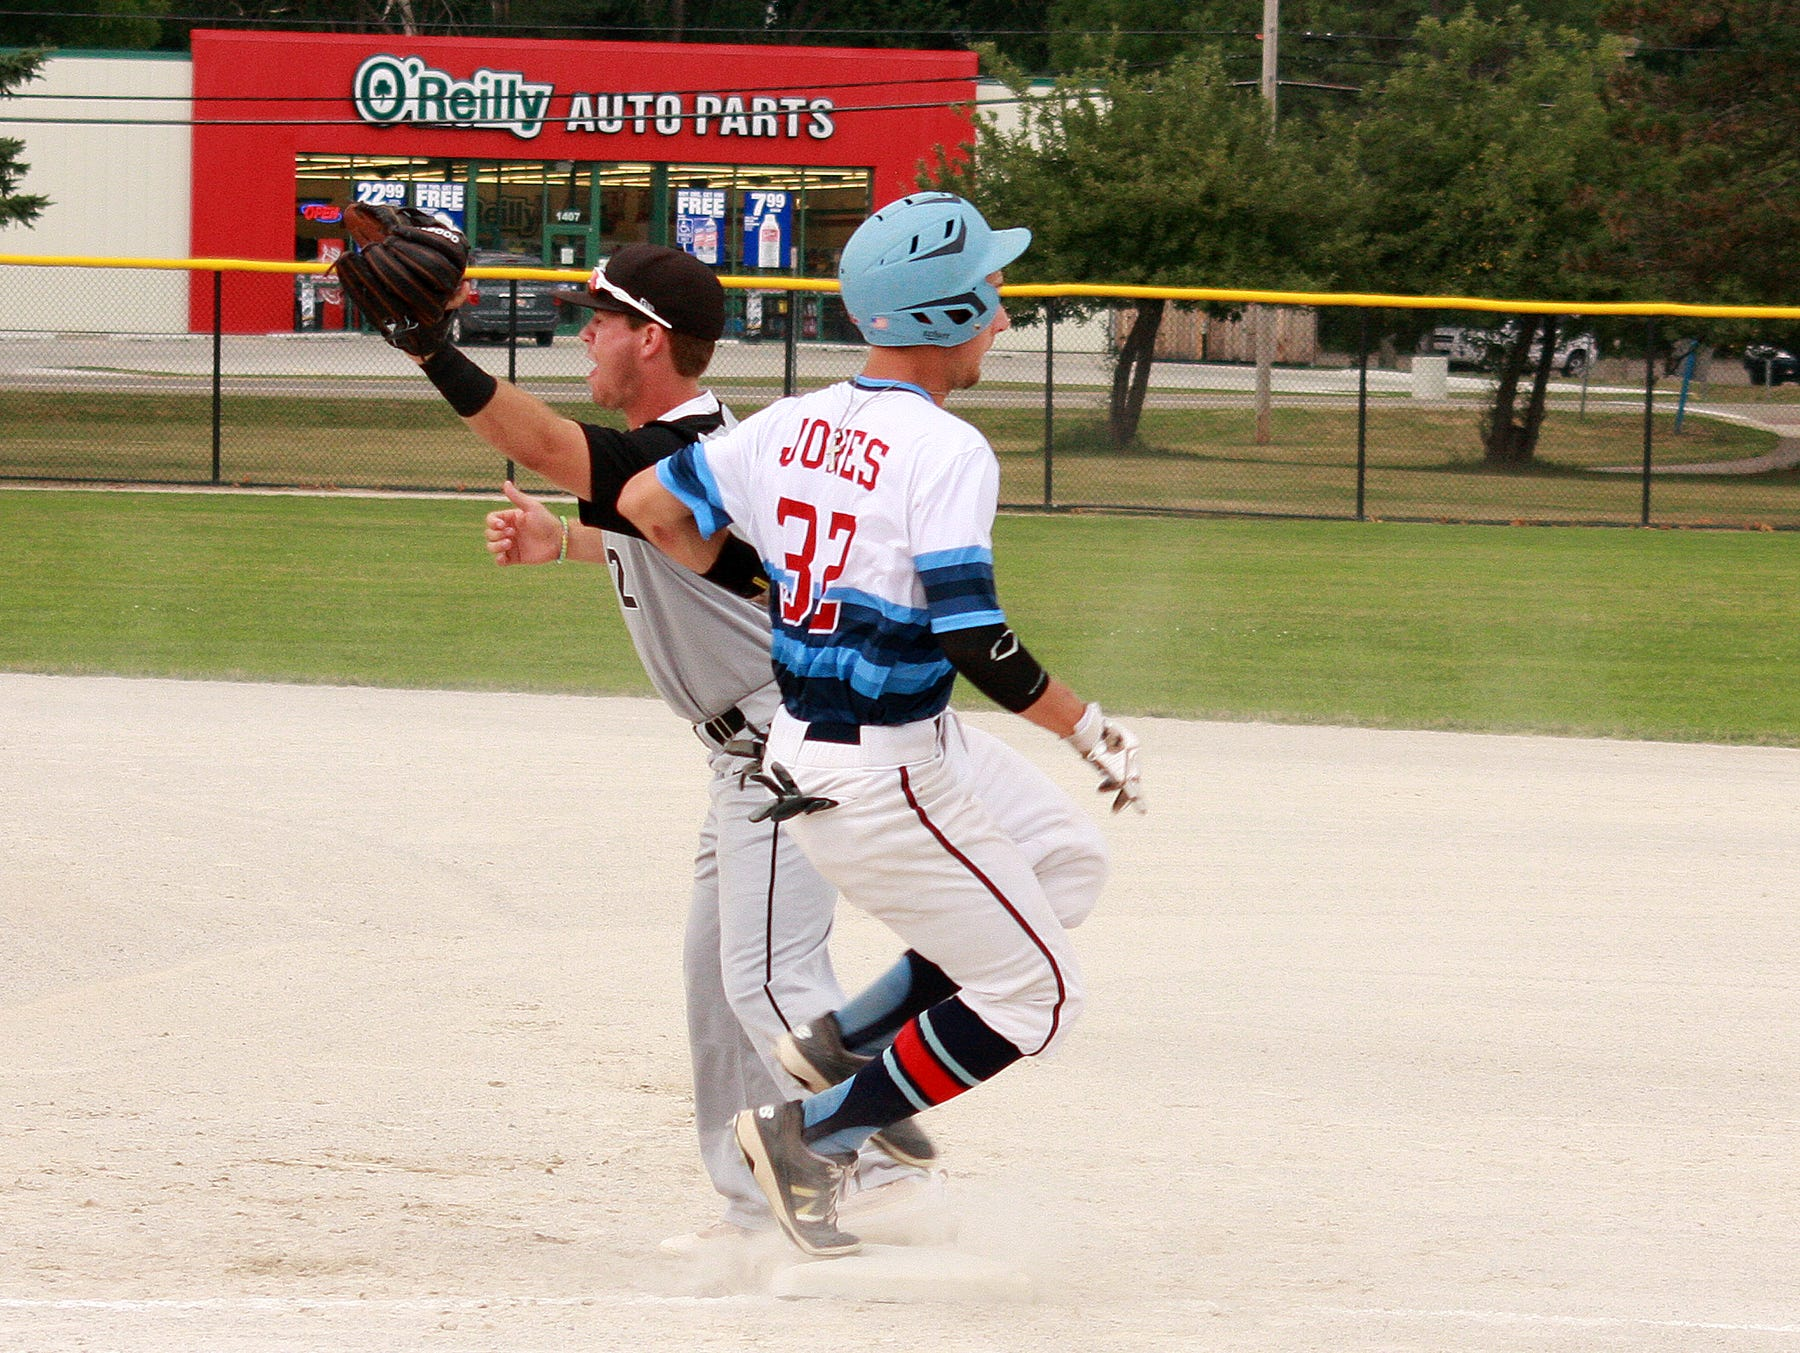 Nick Jones, of Lakeview, plays for Midwest Athletics at the Connie Mack Regional at Bailey Park on Thursday.